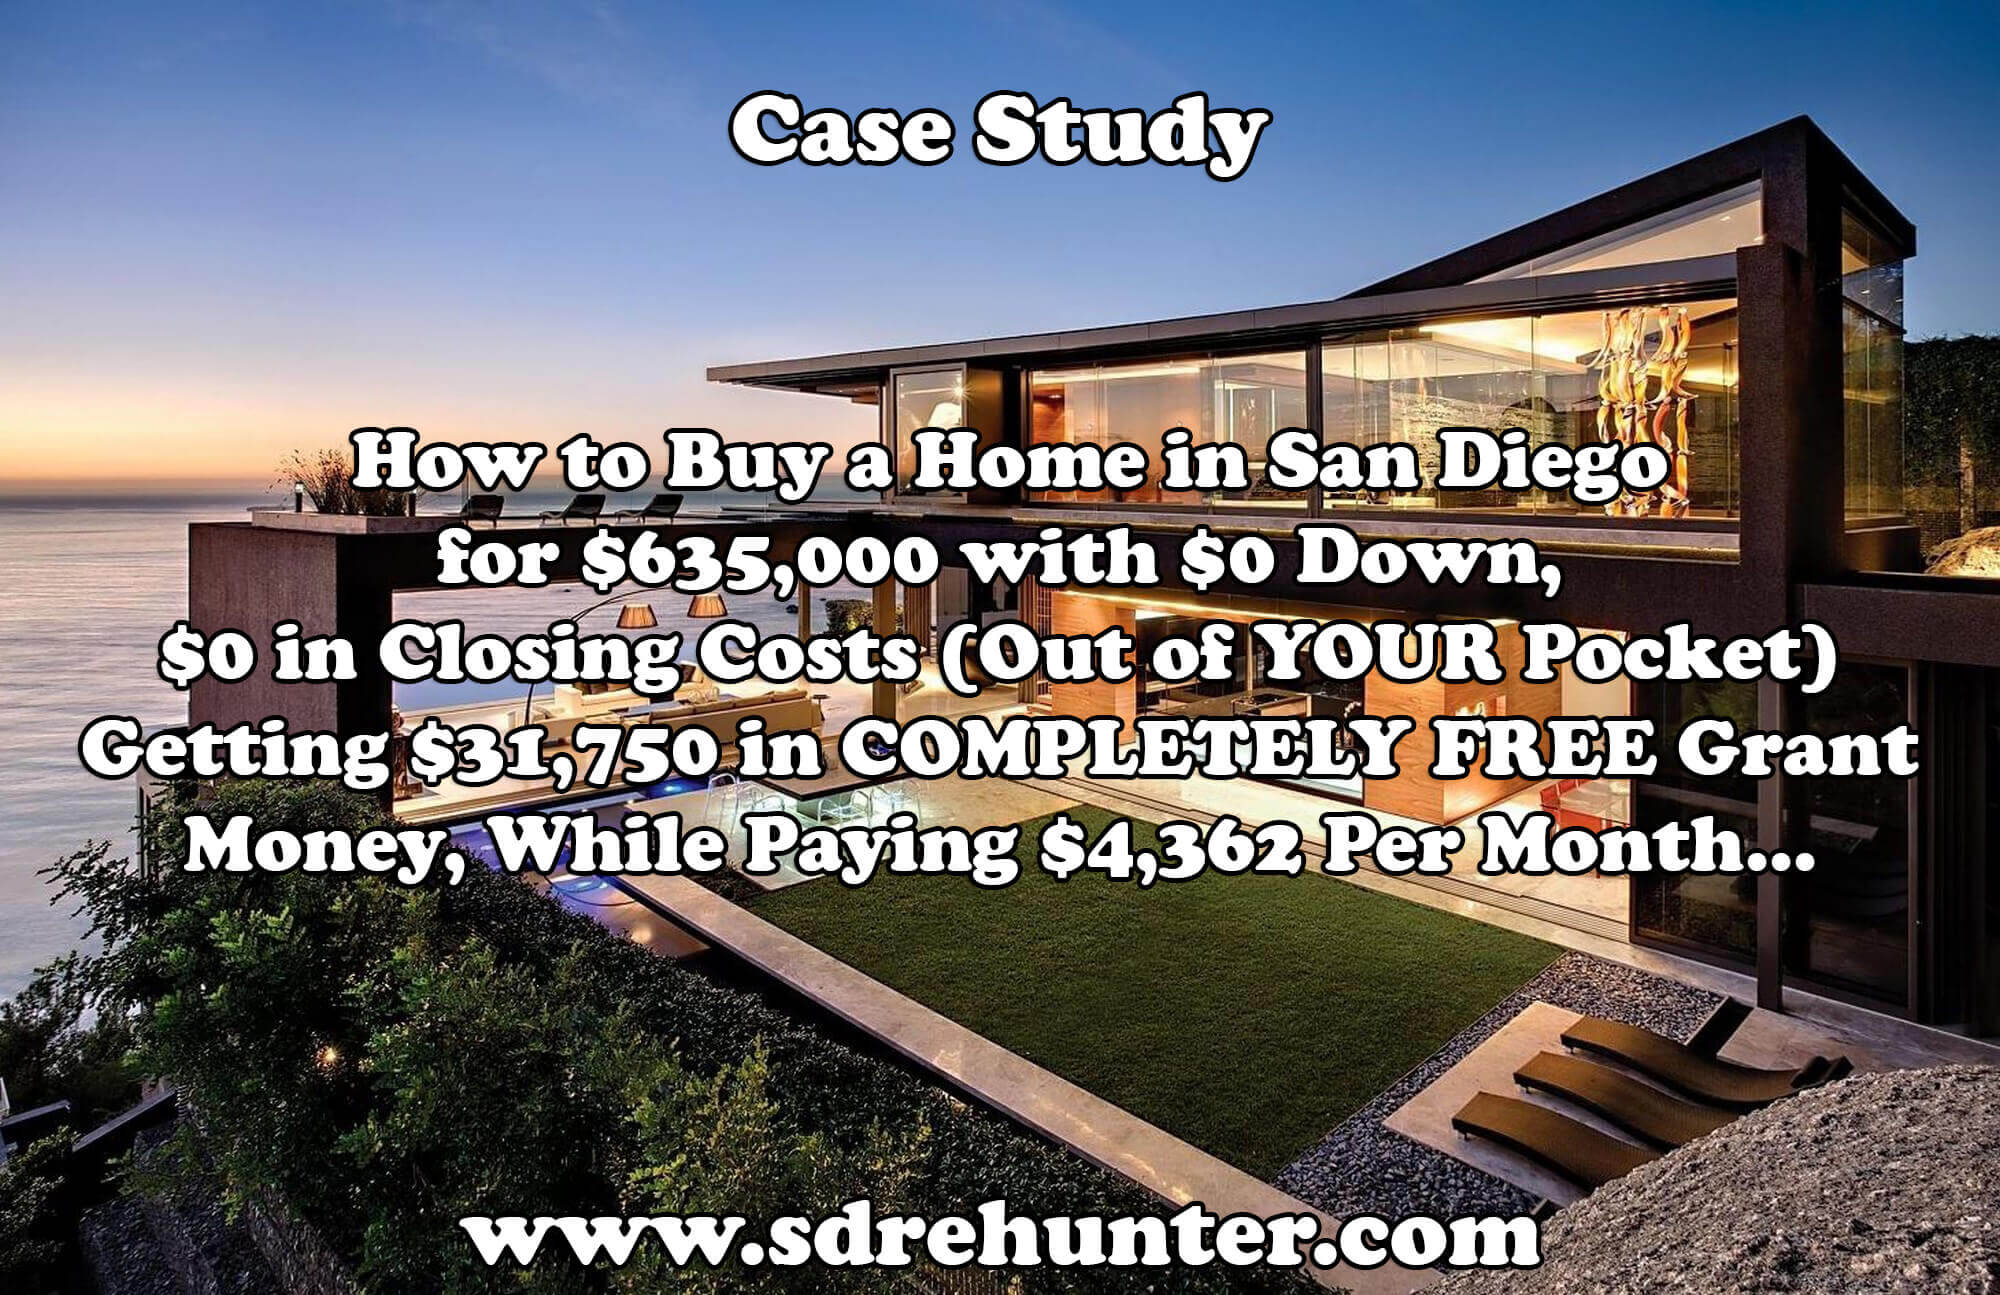 Case Study: How to Buy a Home in San Diego for $635,000 with $0 Down, $0 in Closing Costs (Out of YOUR Pocket), Getting $31,750 in COMPLETELY FREE Grant Money, While Paying $4,362 Per Month...